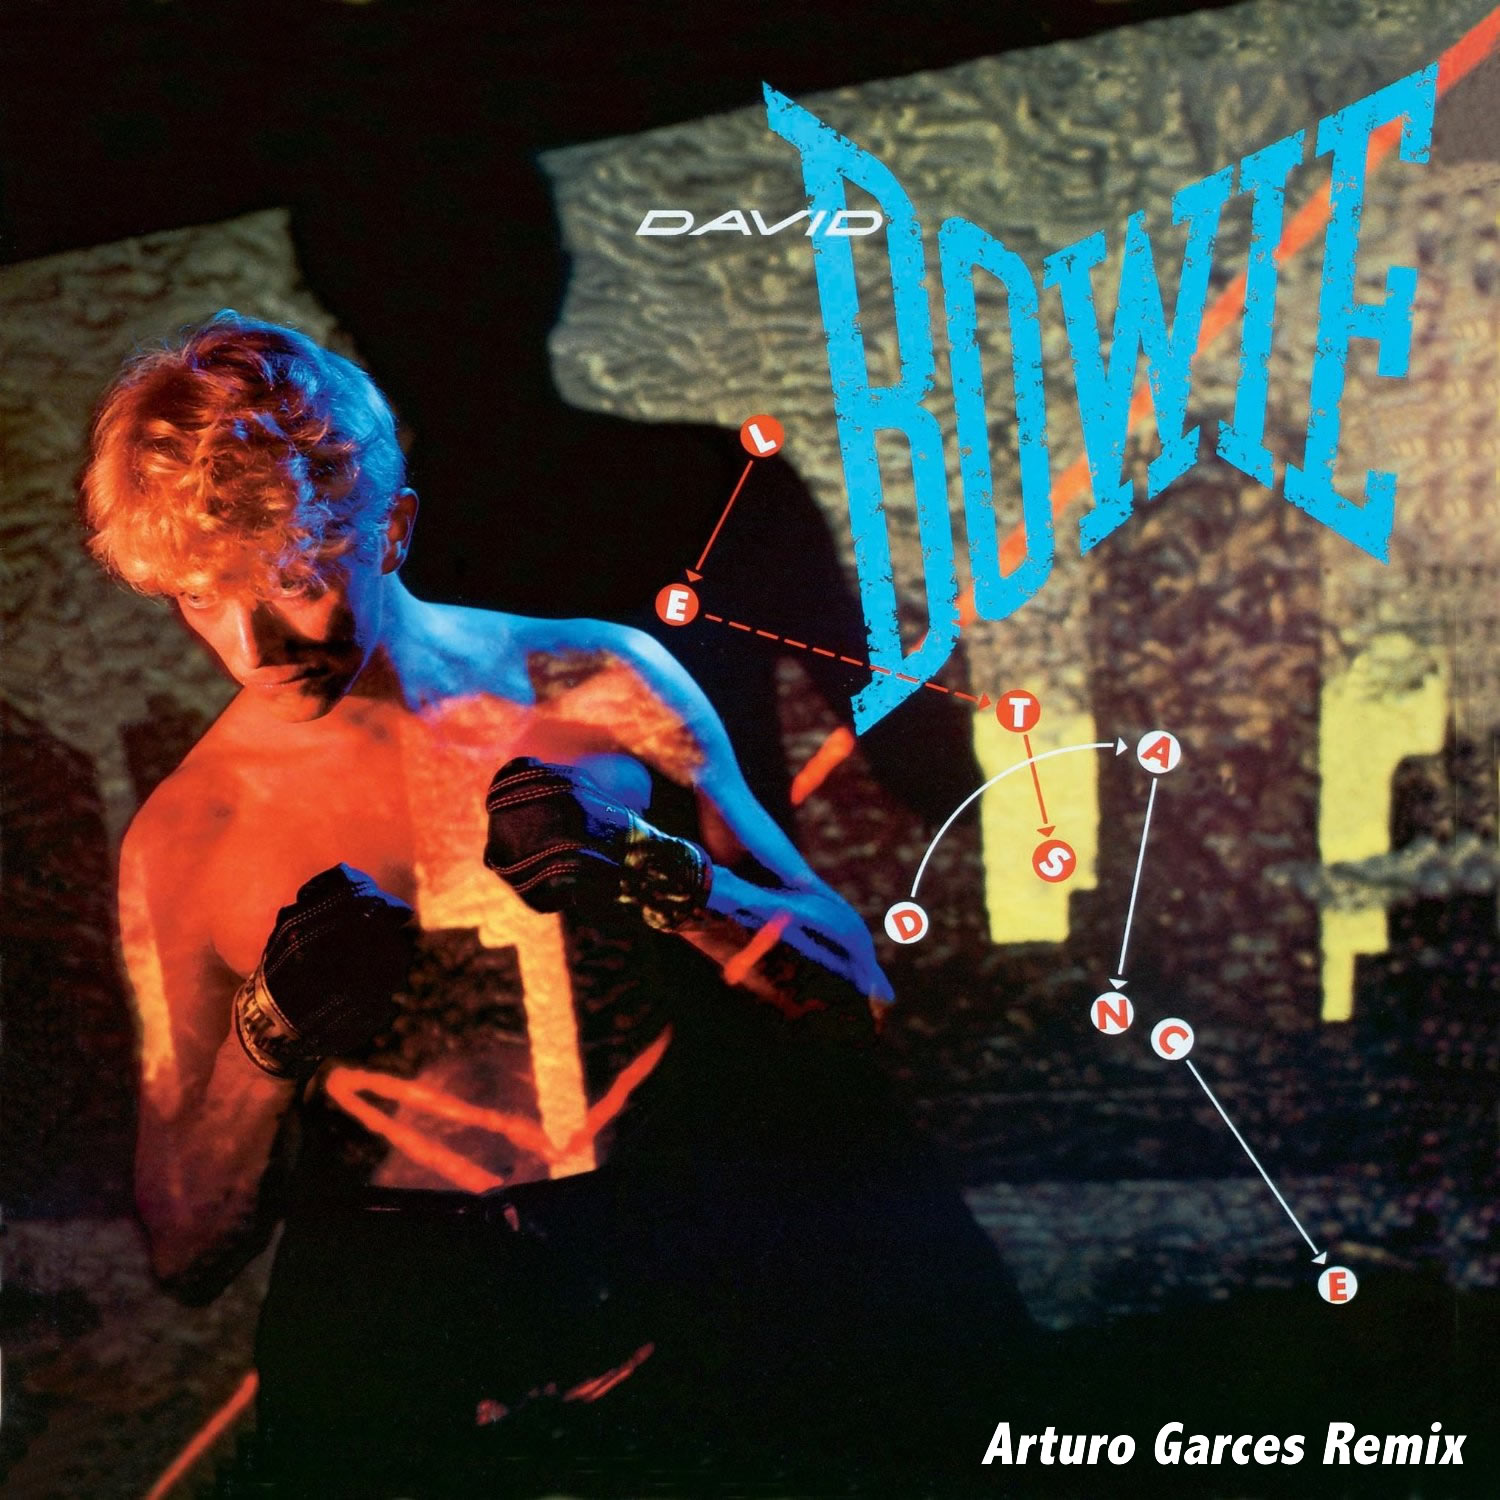 David Bowie - Lets Dance (Arturo Garces Remix)